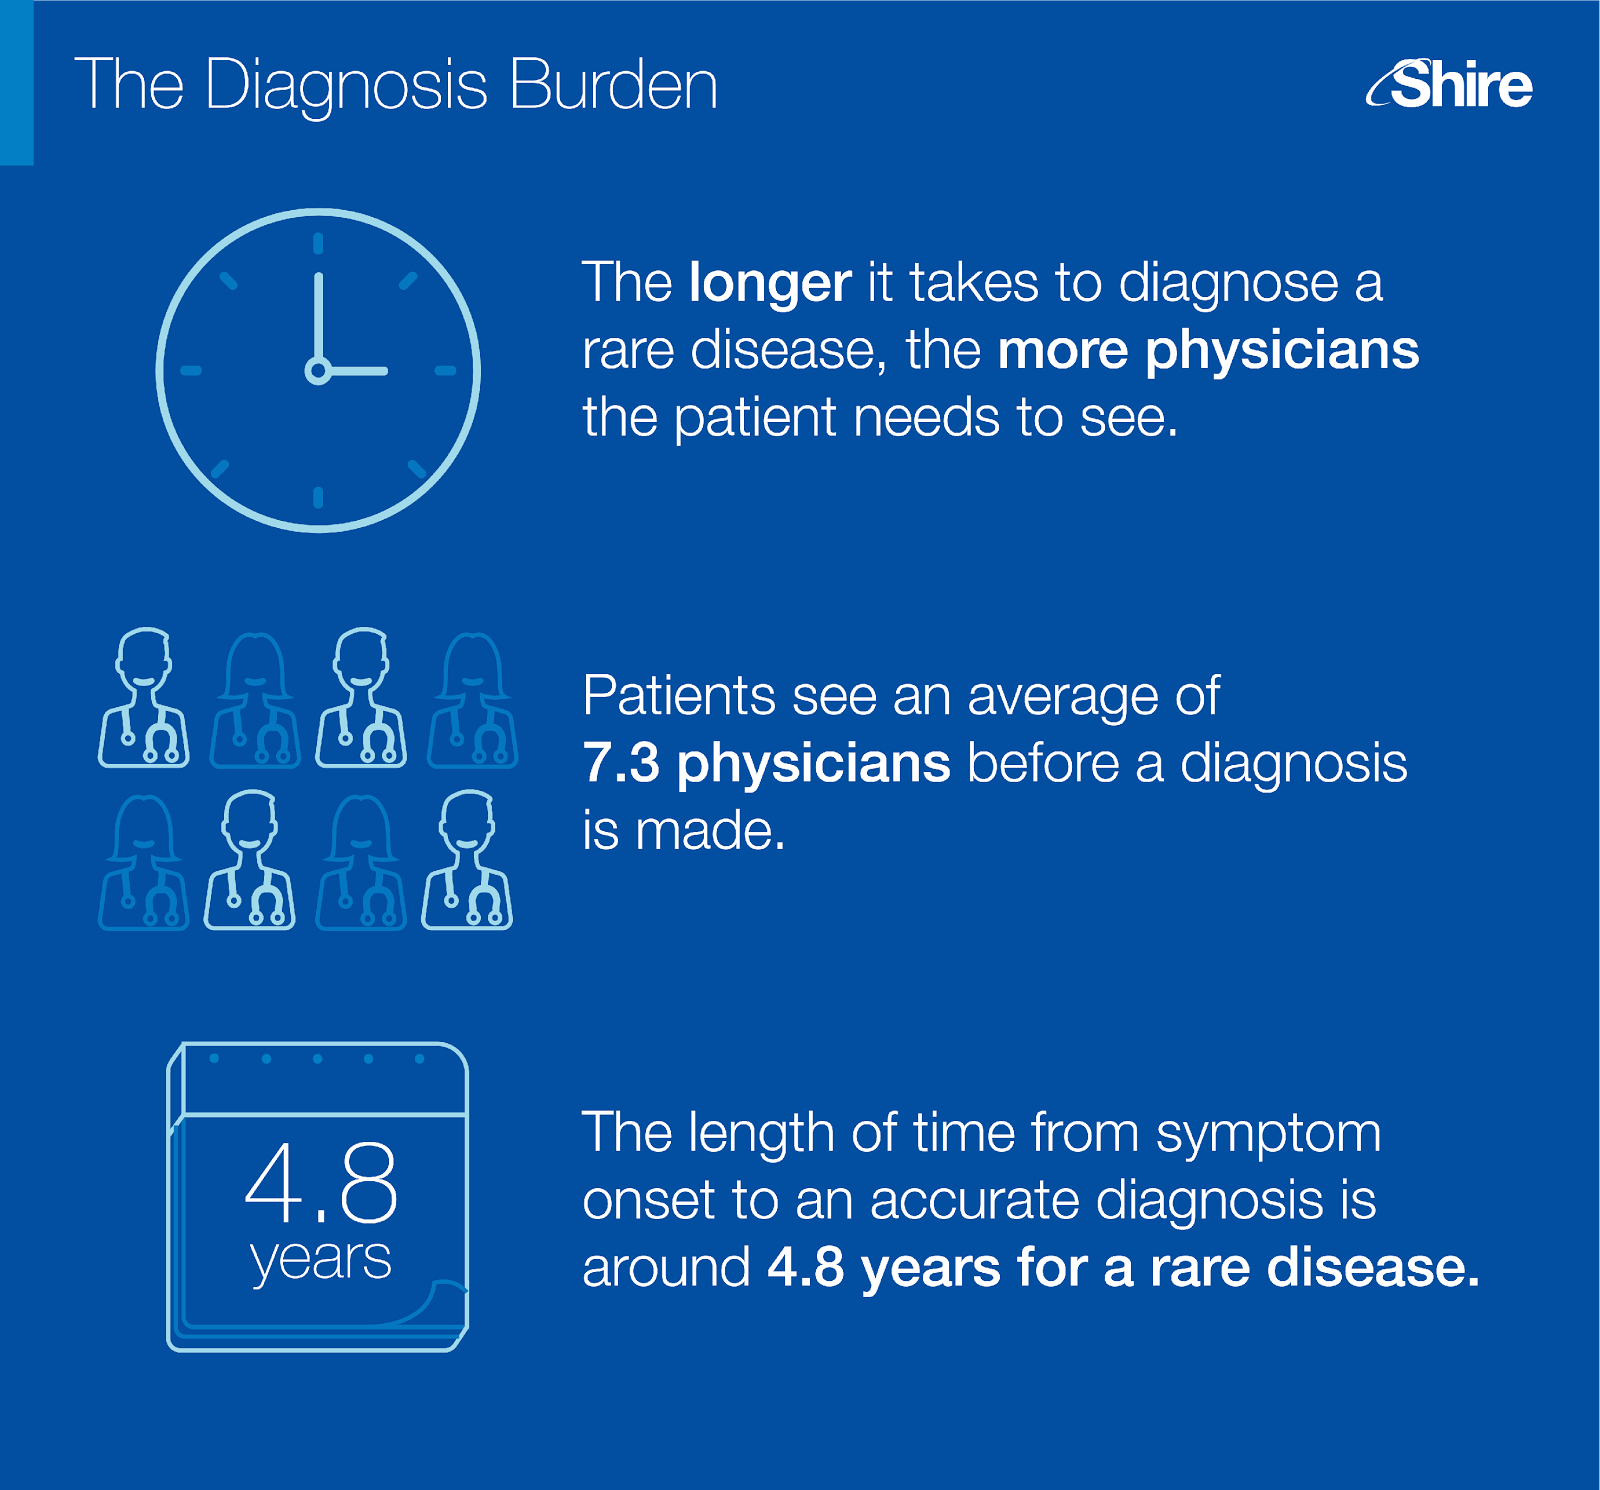 A Disease So Rare, It Took 23 Years to Diagnose